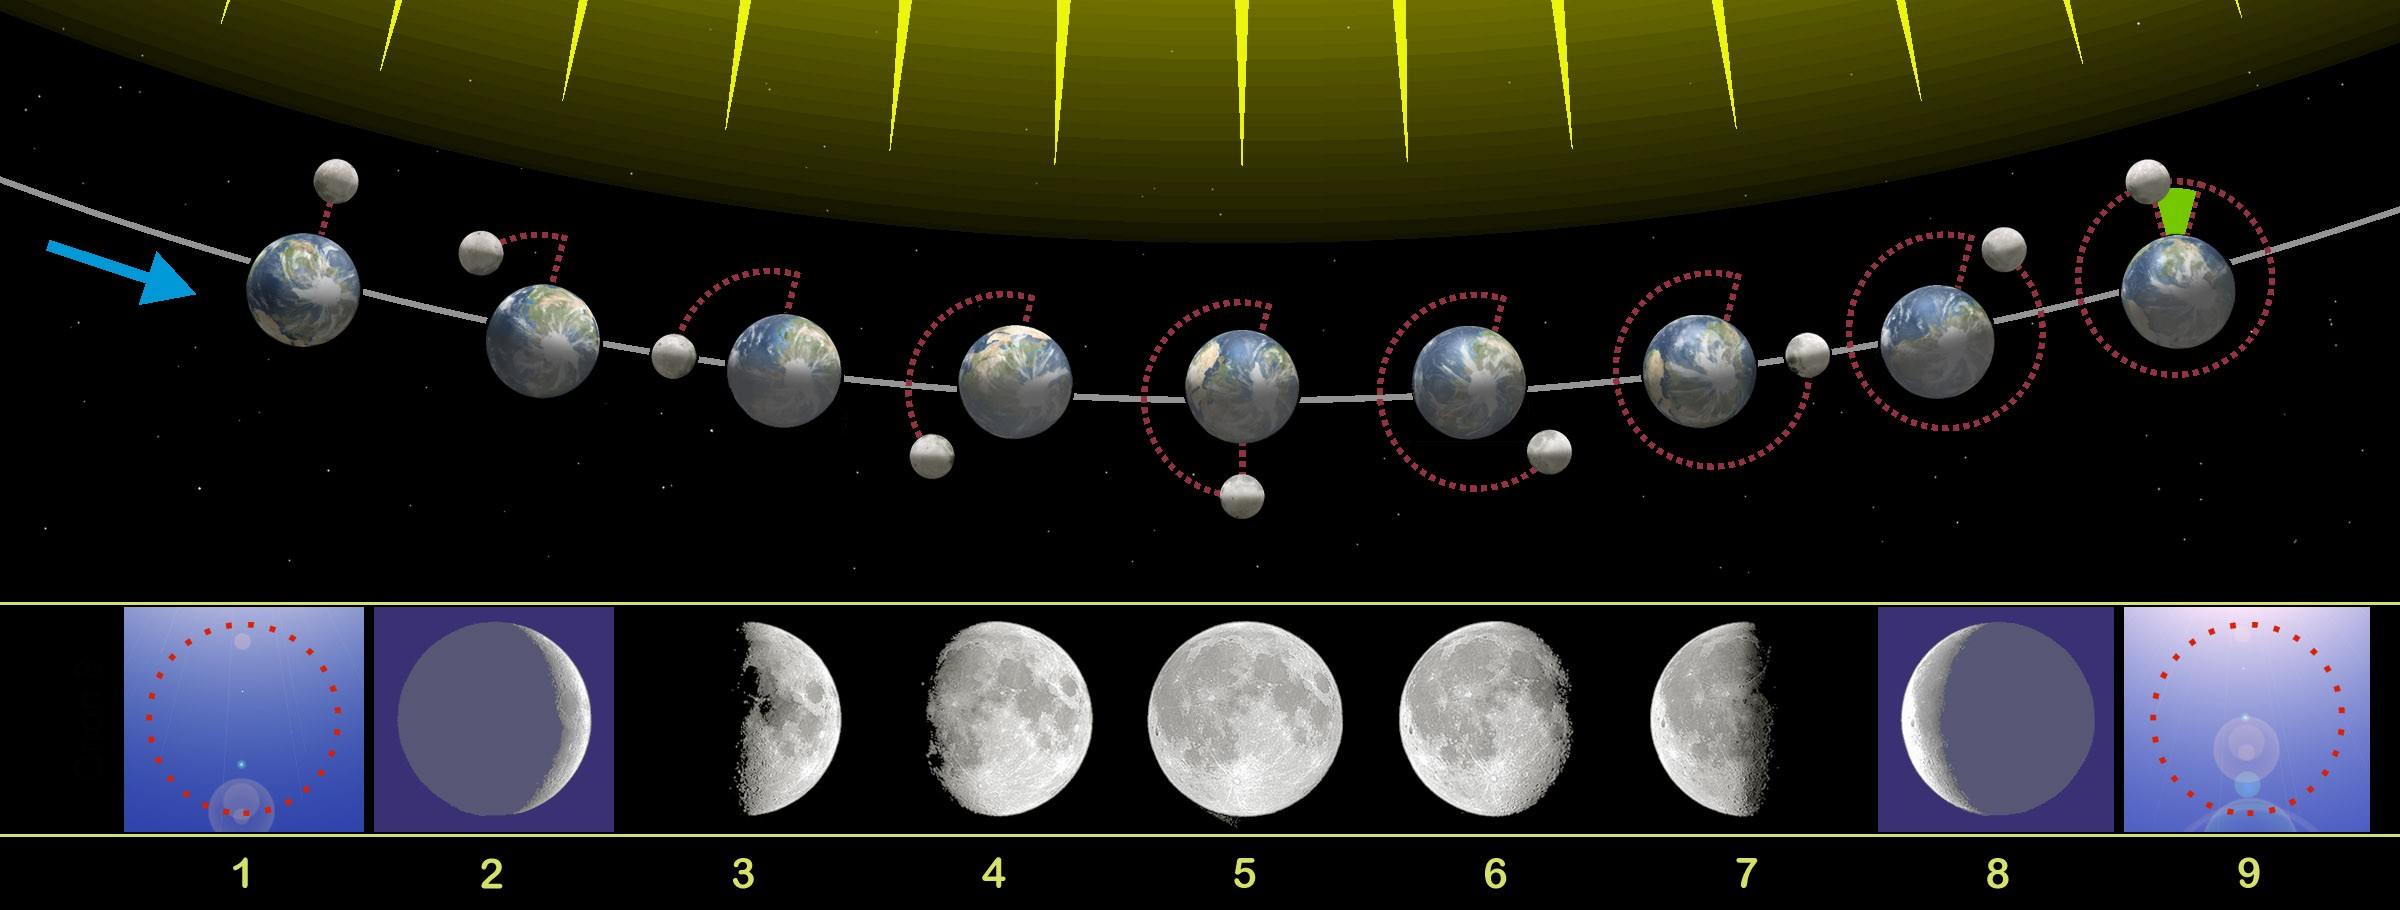 Calendario Lunar Mes De Julio Actual Sismolog­a Y astronom­a Of Calendario Lunar Mes De Julio Recientes Calendario Mes De Junio